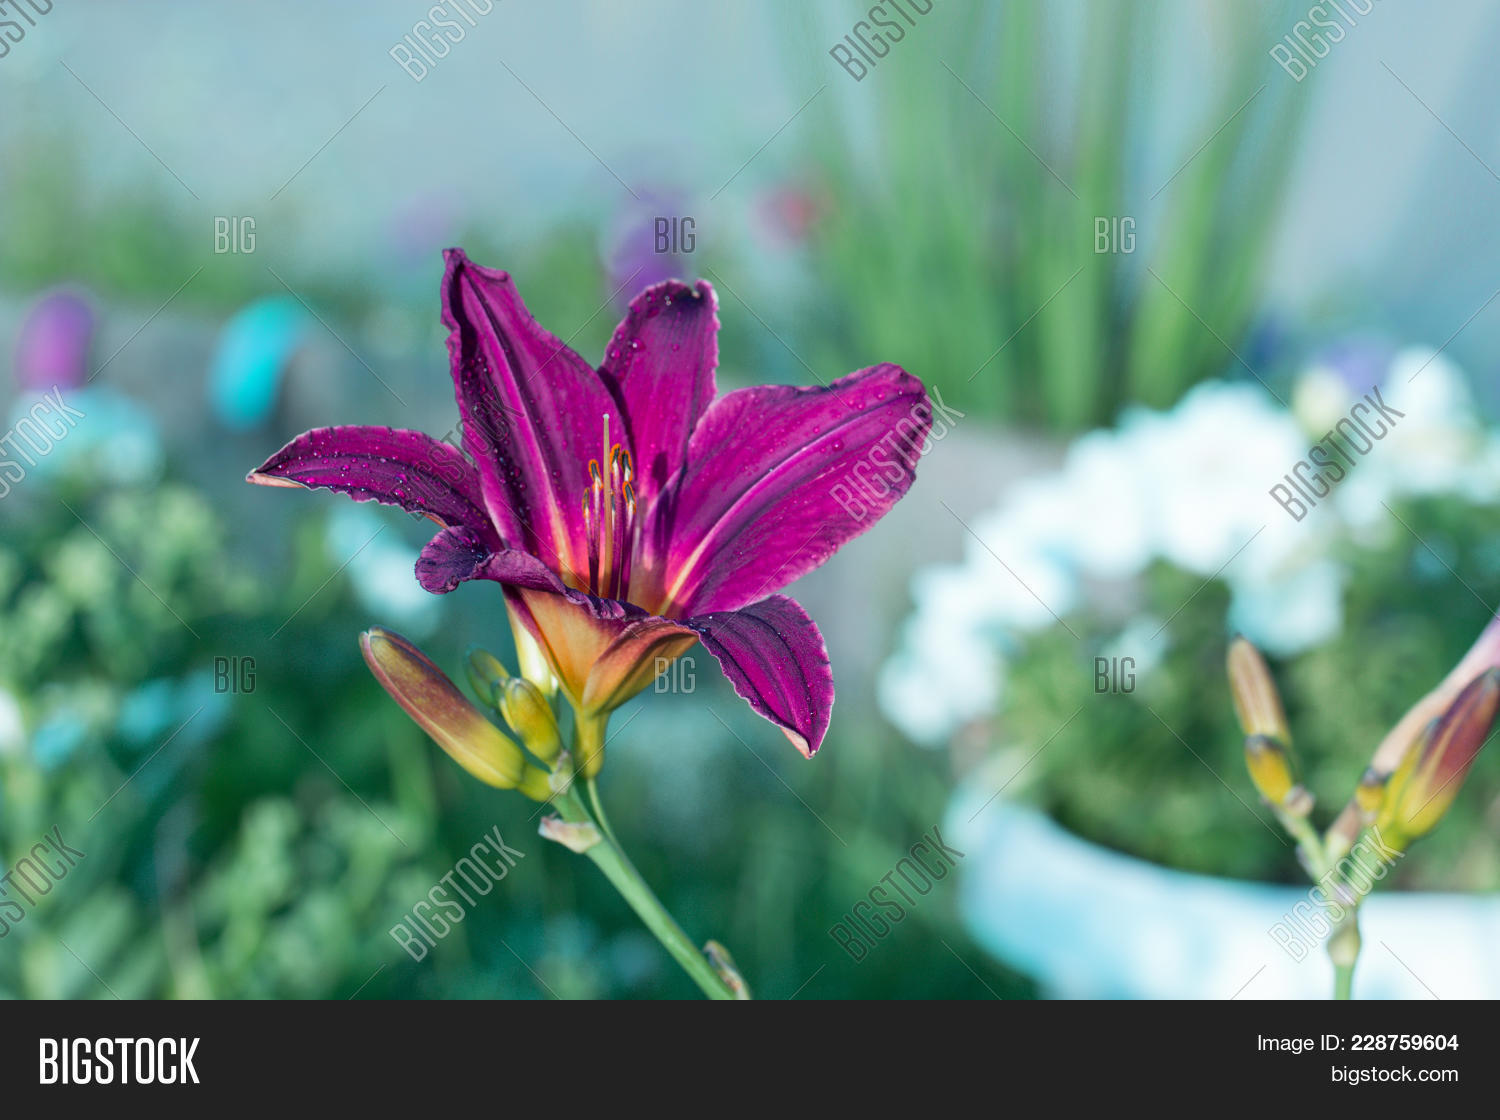 Royal Lily Bloomed Image Photo Free Trial Bigstock